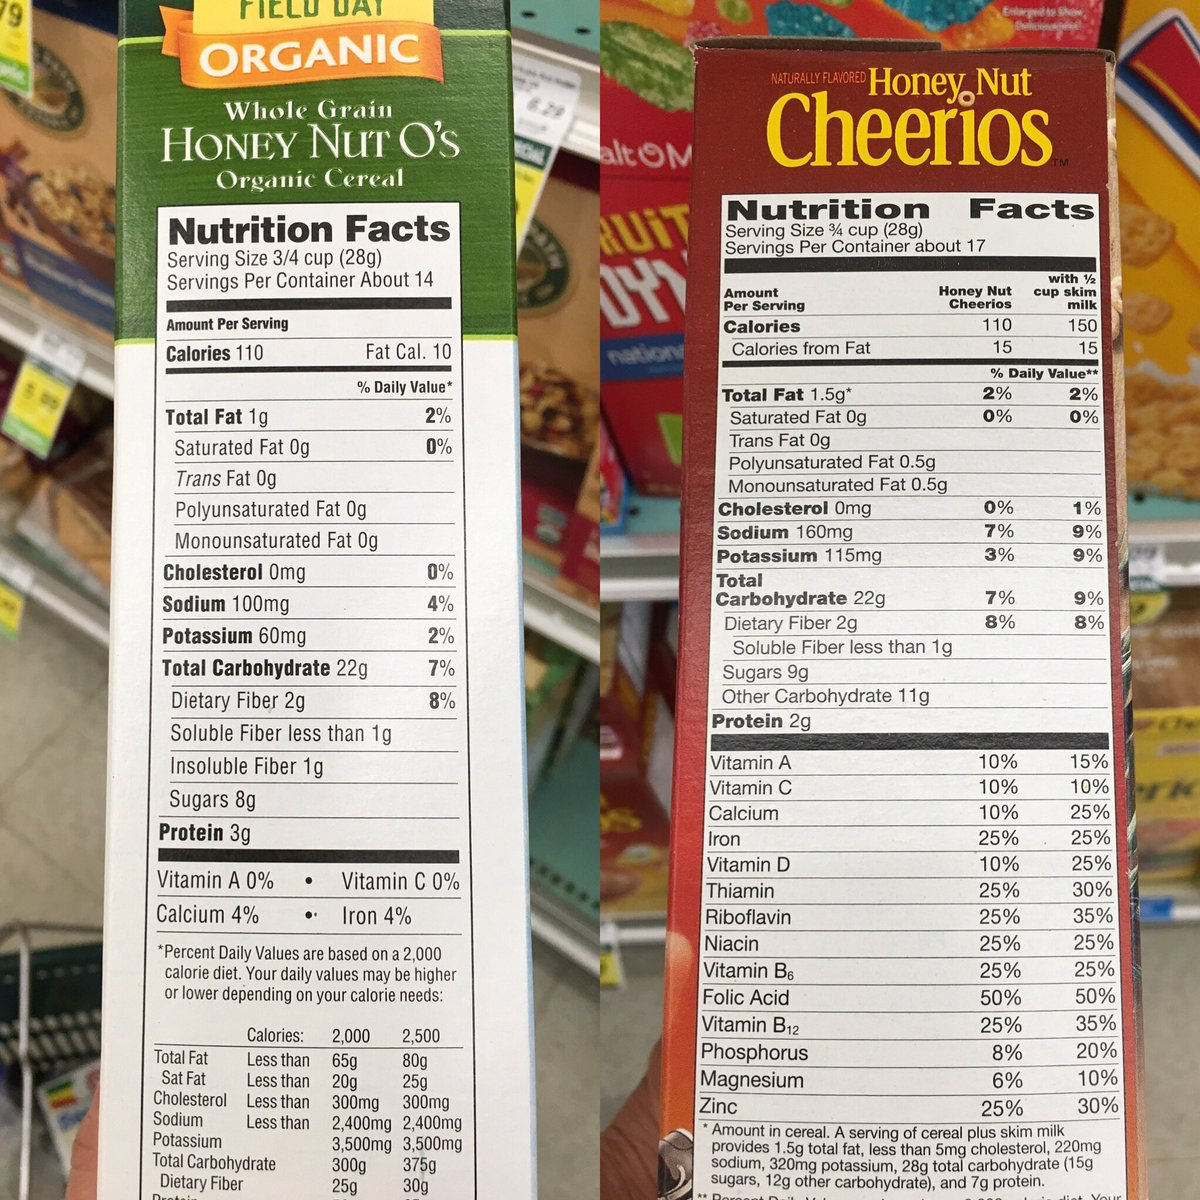 Non-GMO is less nutritious.  Labels spell it all out. #paymoreforless https://t.co/jBo1rHjHsG